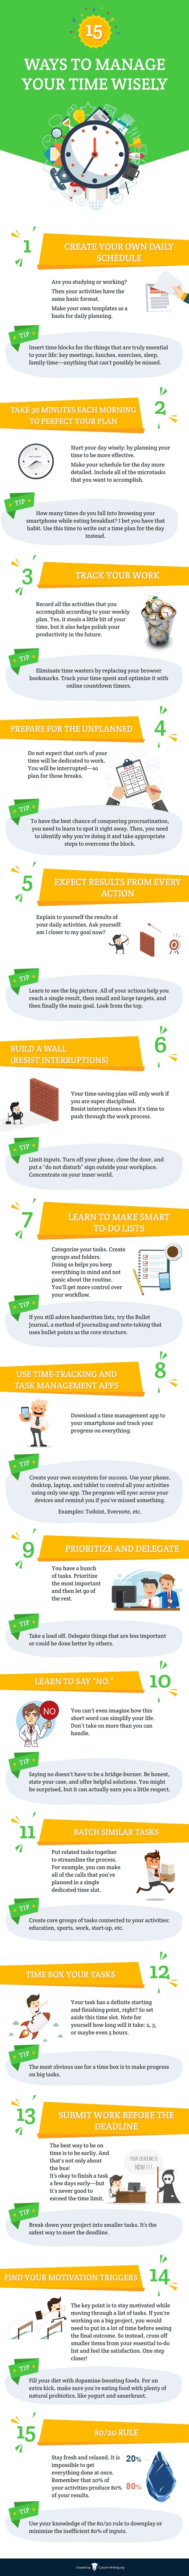 Tips to manage time wisely infographic - ToolsHero